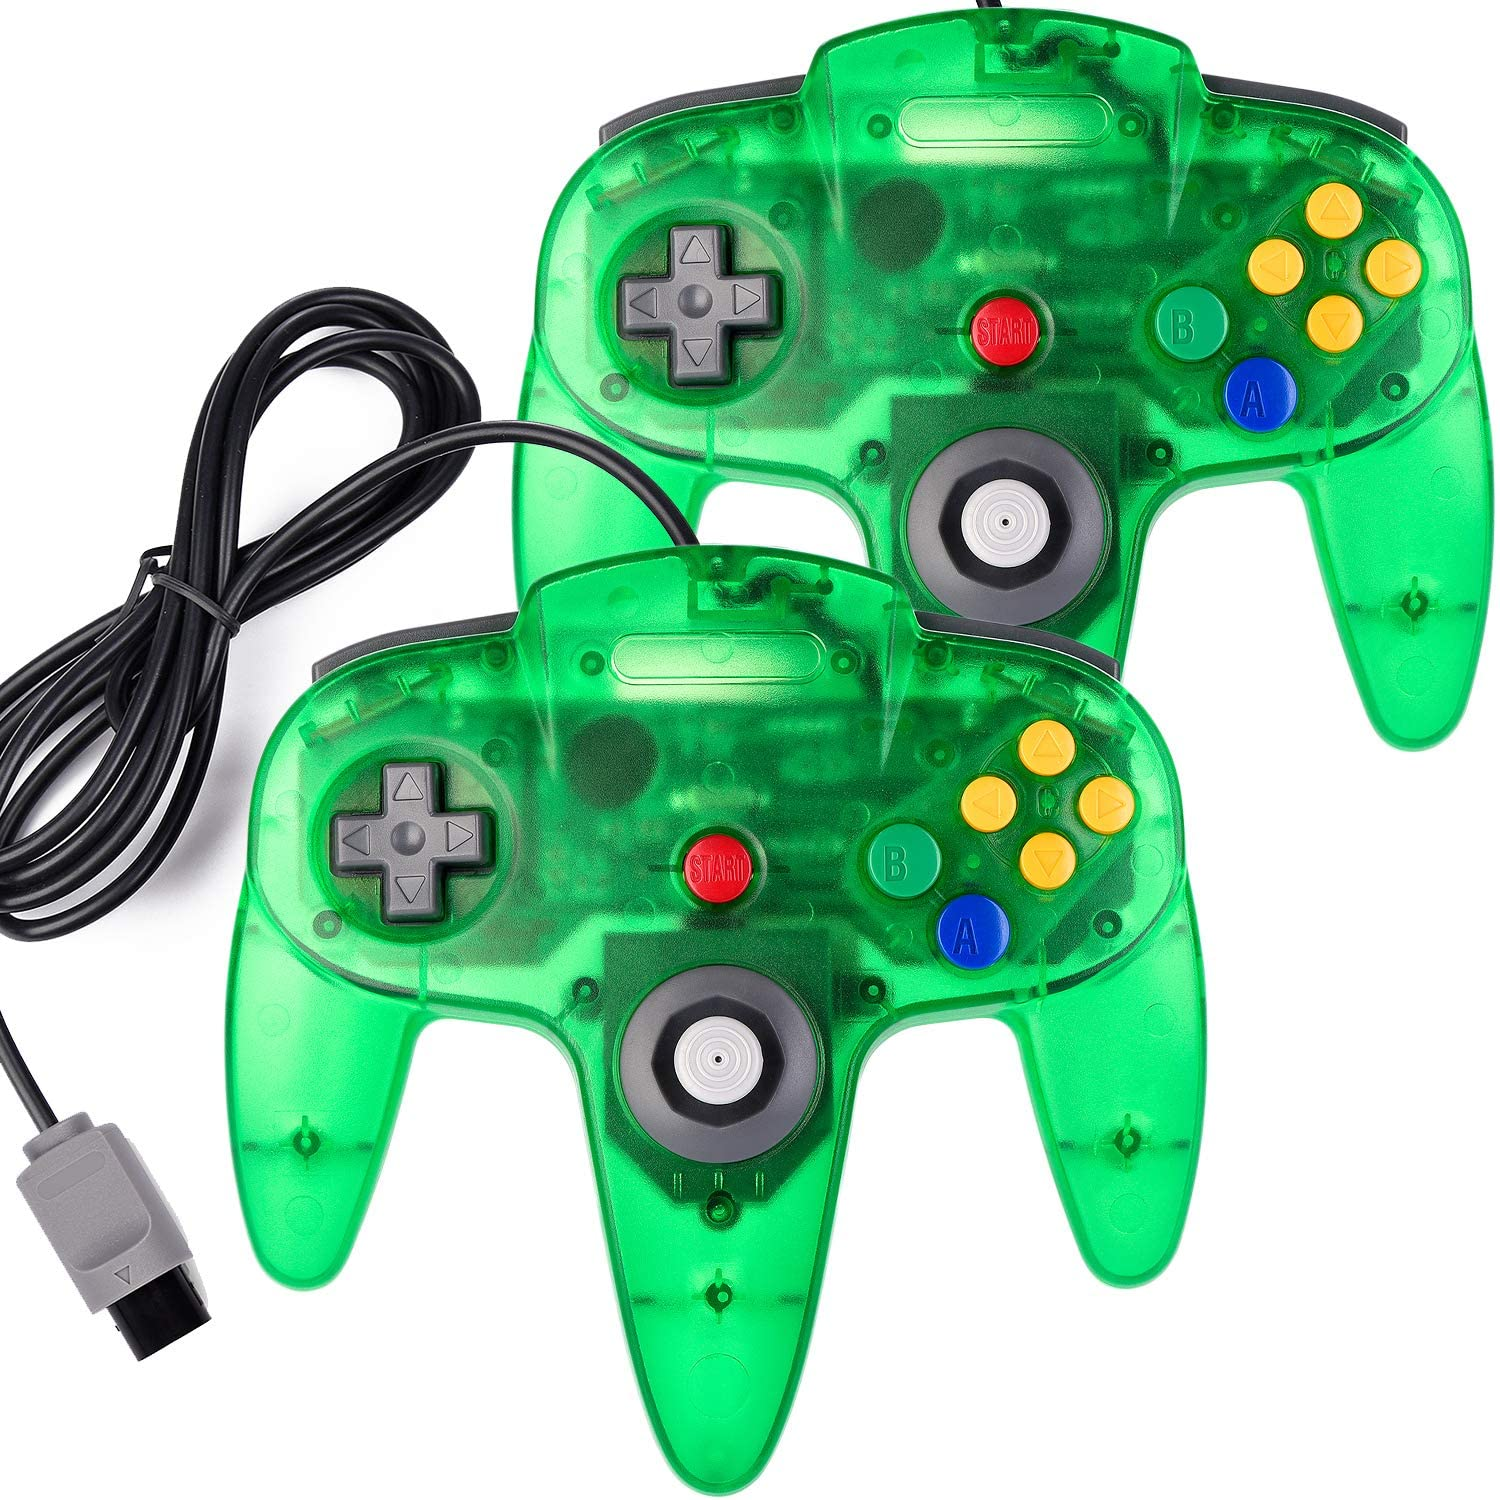 2 Pack N64 Controller, MODESLAB Classic Wired N64 64-bit Gamepad Joystick for Ultra 64 Video Game Console N64 System (Transparent Green)